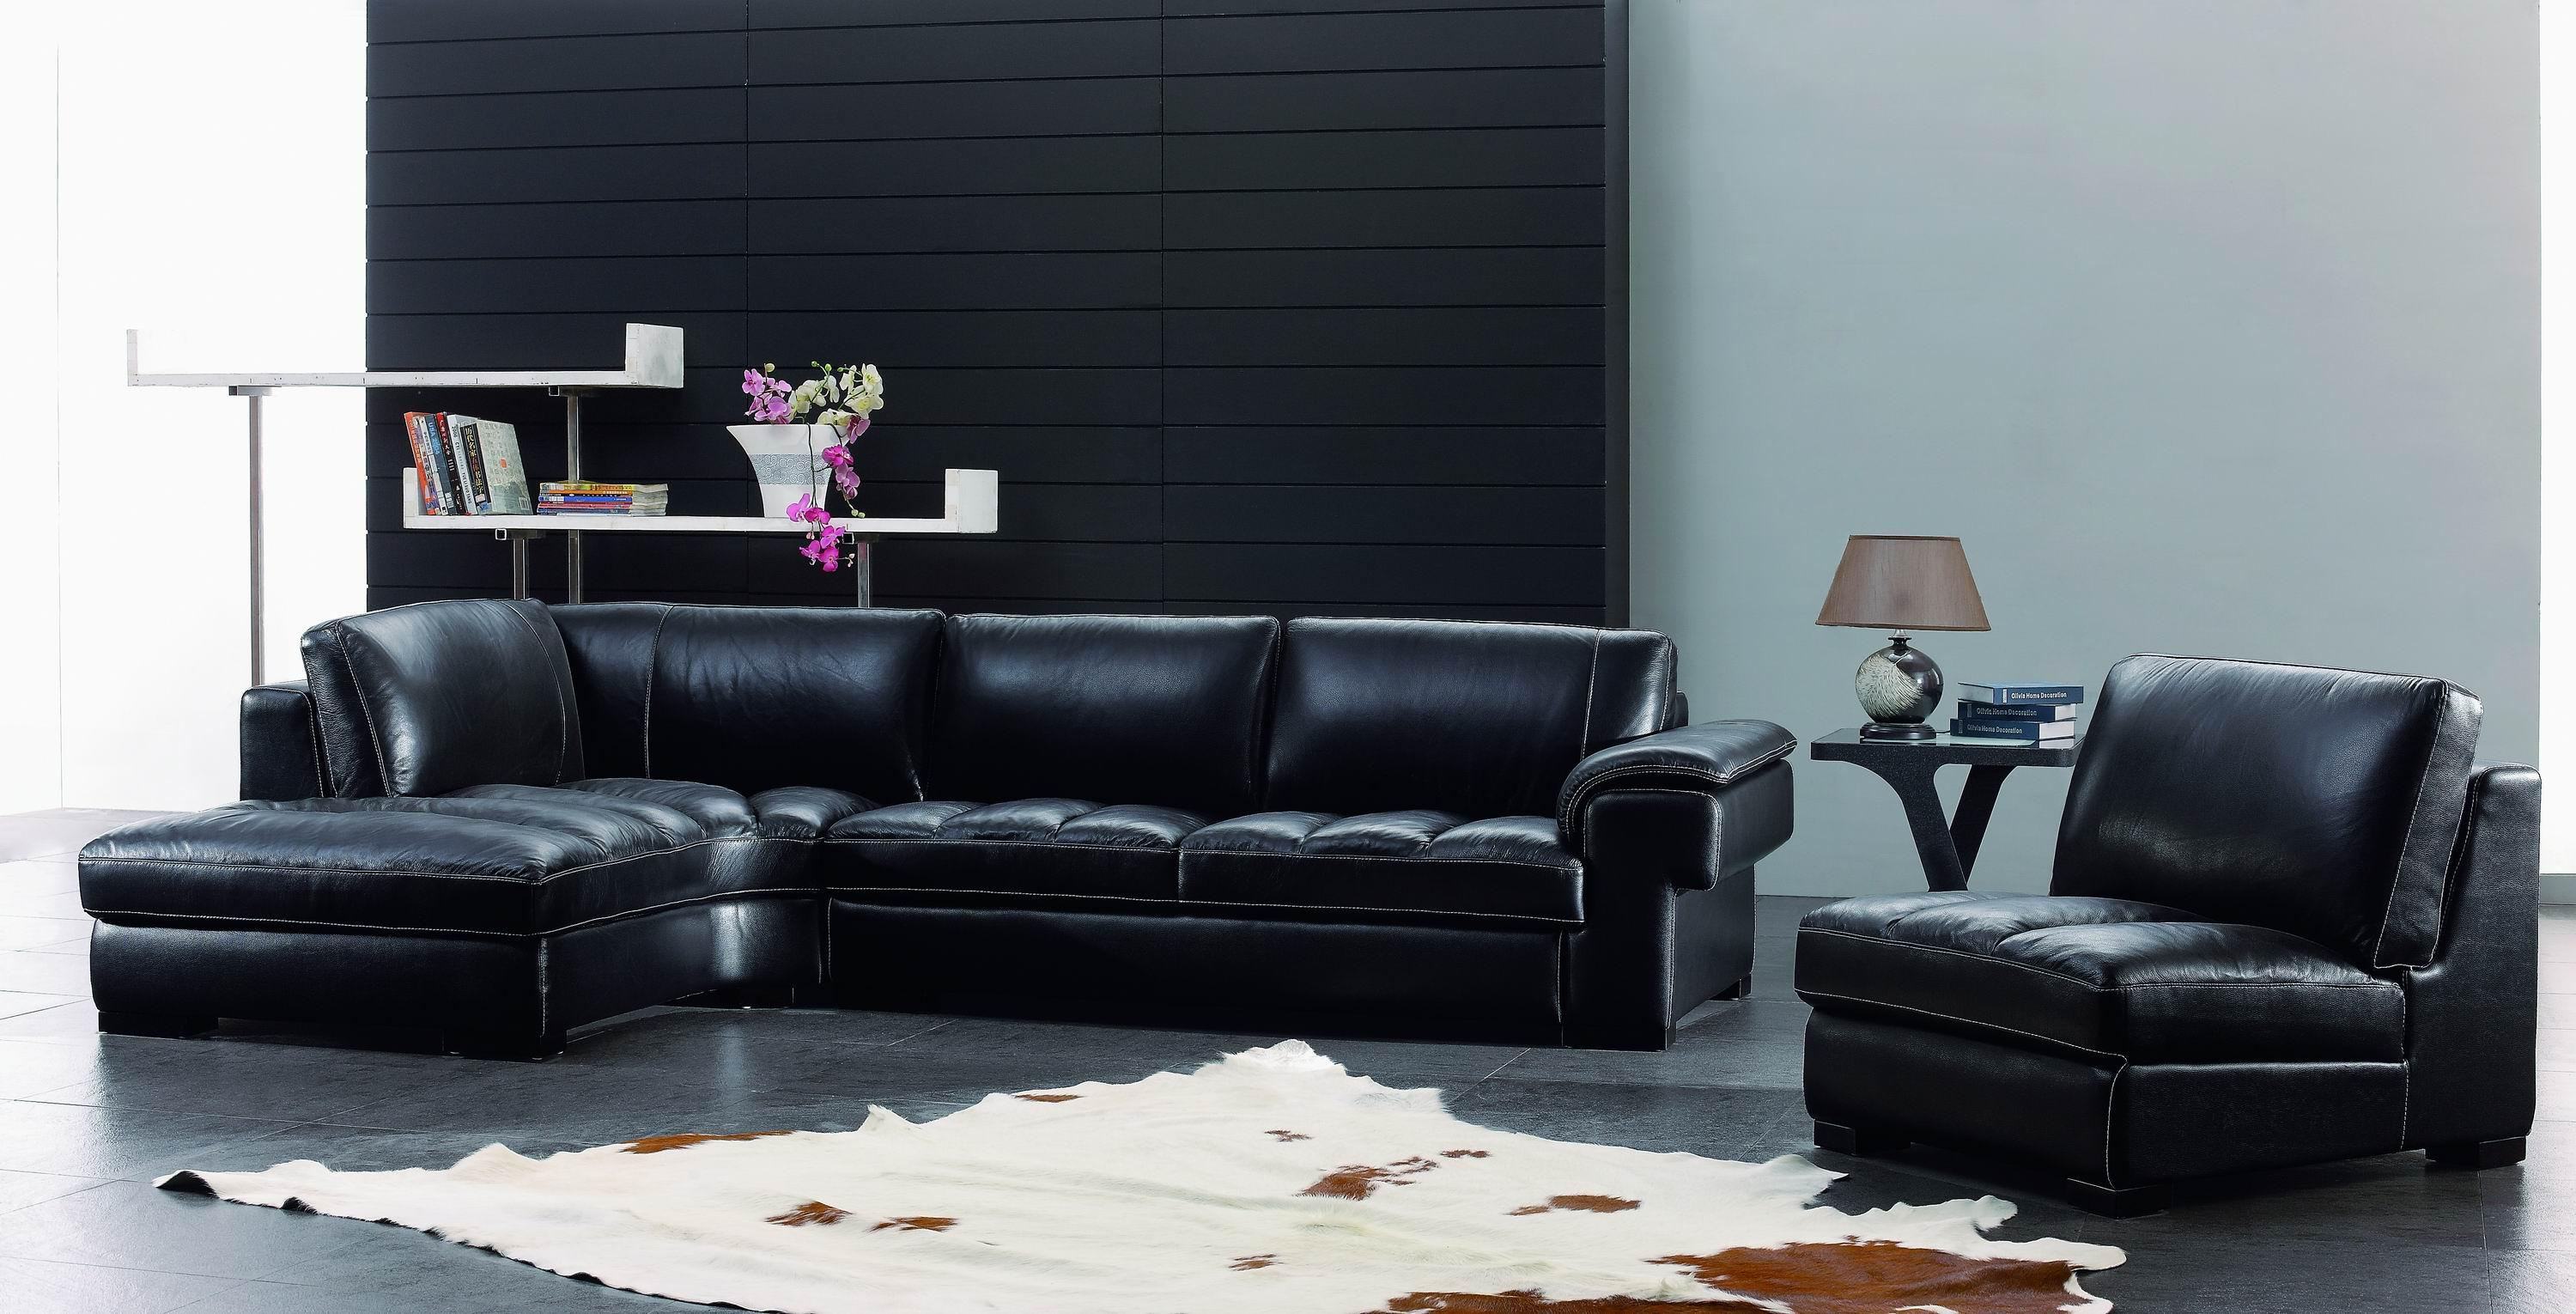 Furnishing a dark living room black leather furniture living room decorating ideas image 13 for Living room with black leather furniture